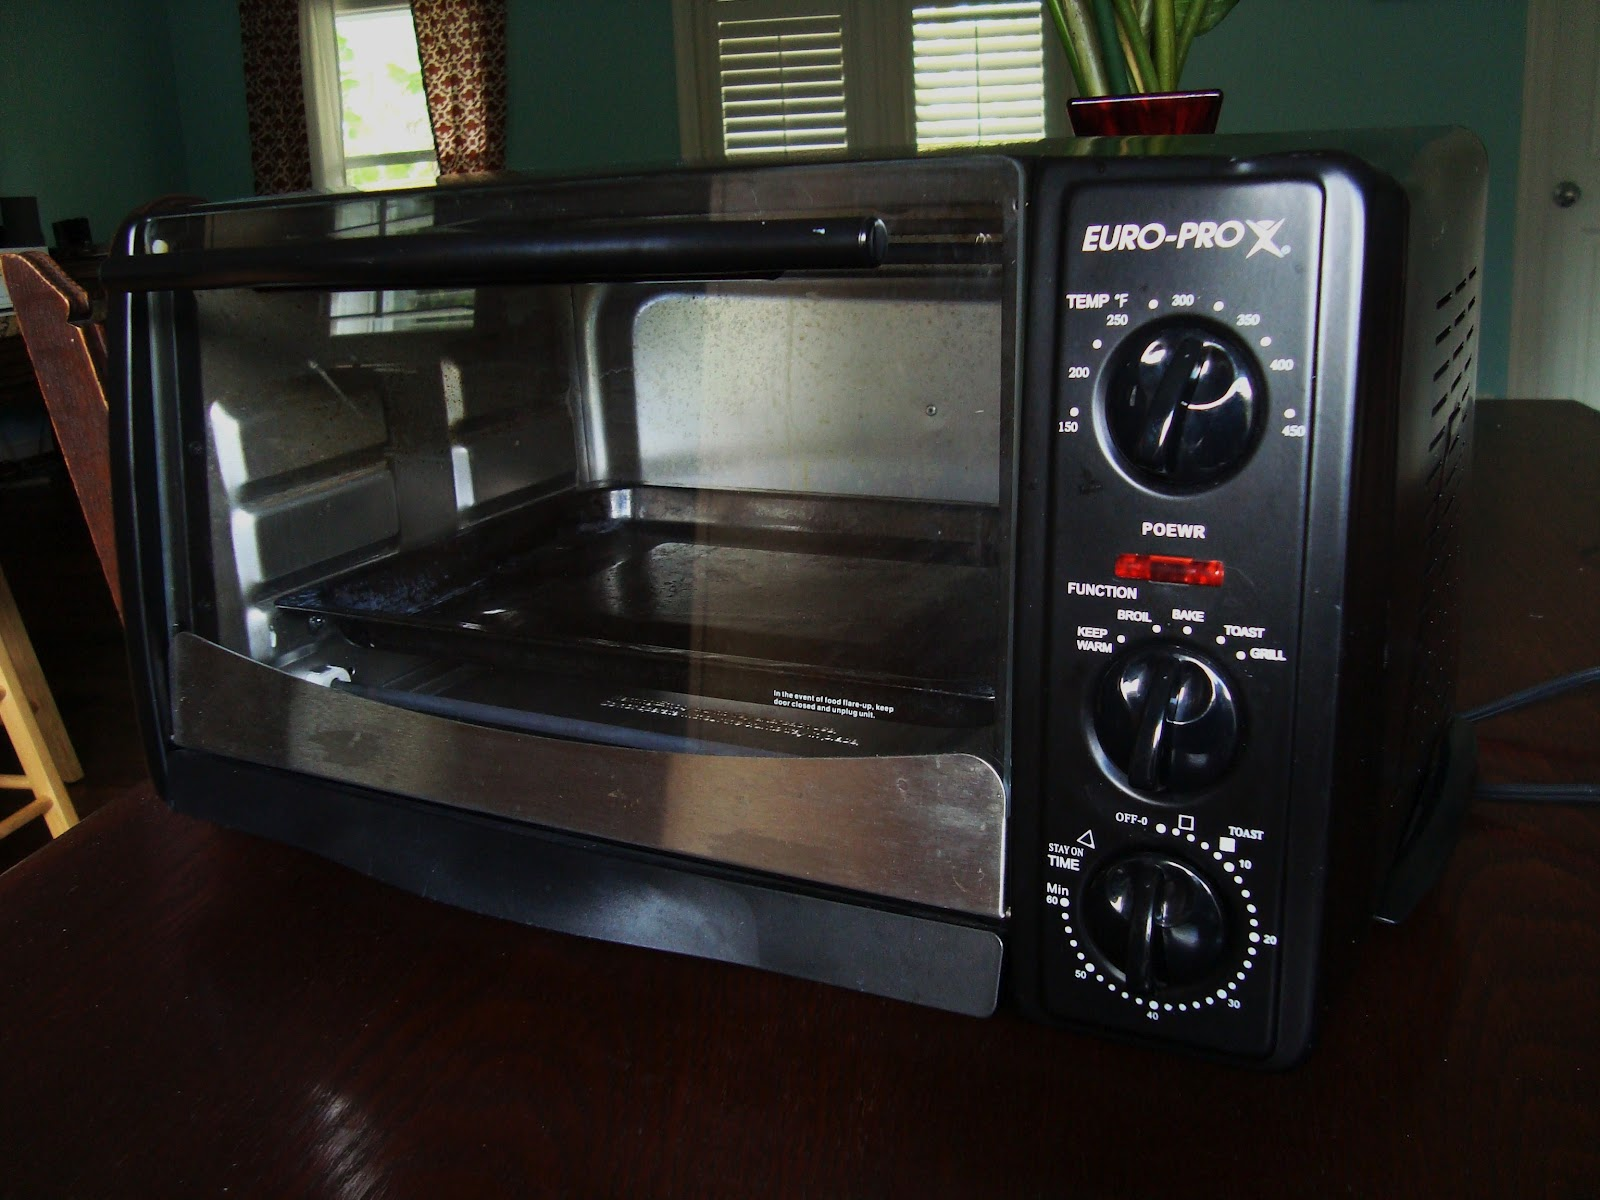 If you're looking for a toaster oven that does it all, look no further,  park your eyes on the Euro-Pro 6 Slice Toaster Oven with all the doo dads  you could ...